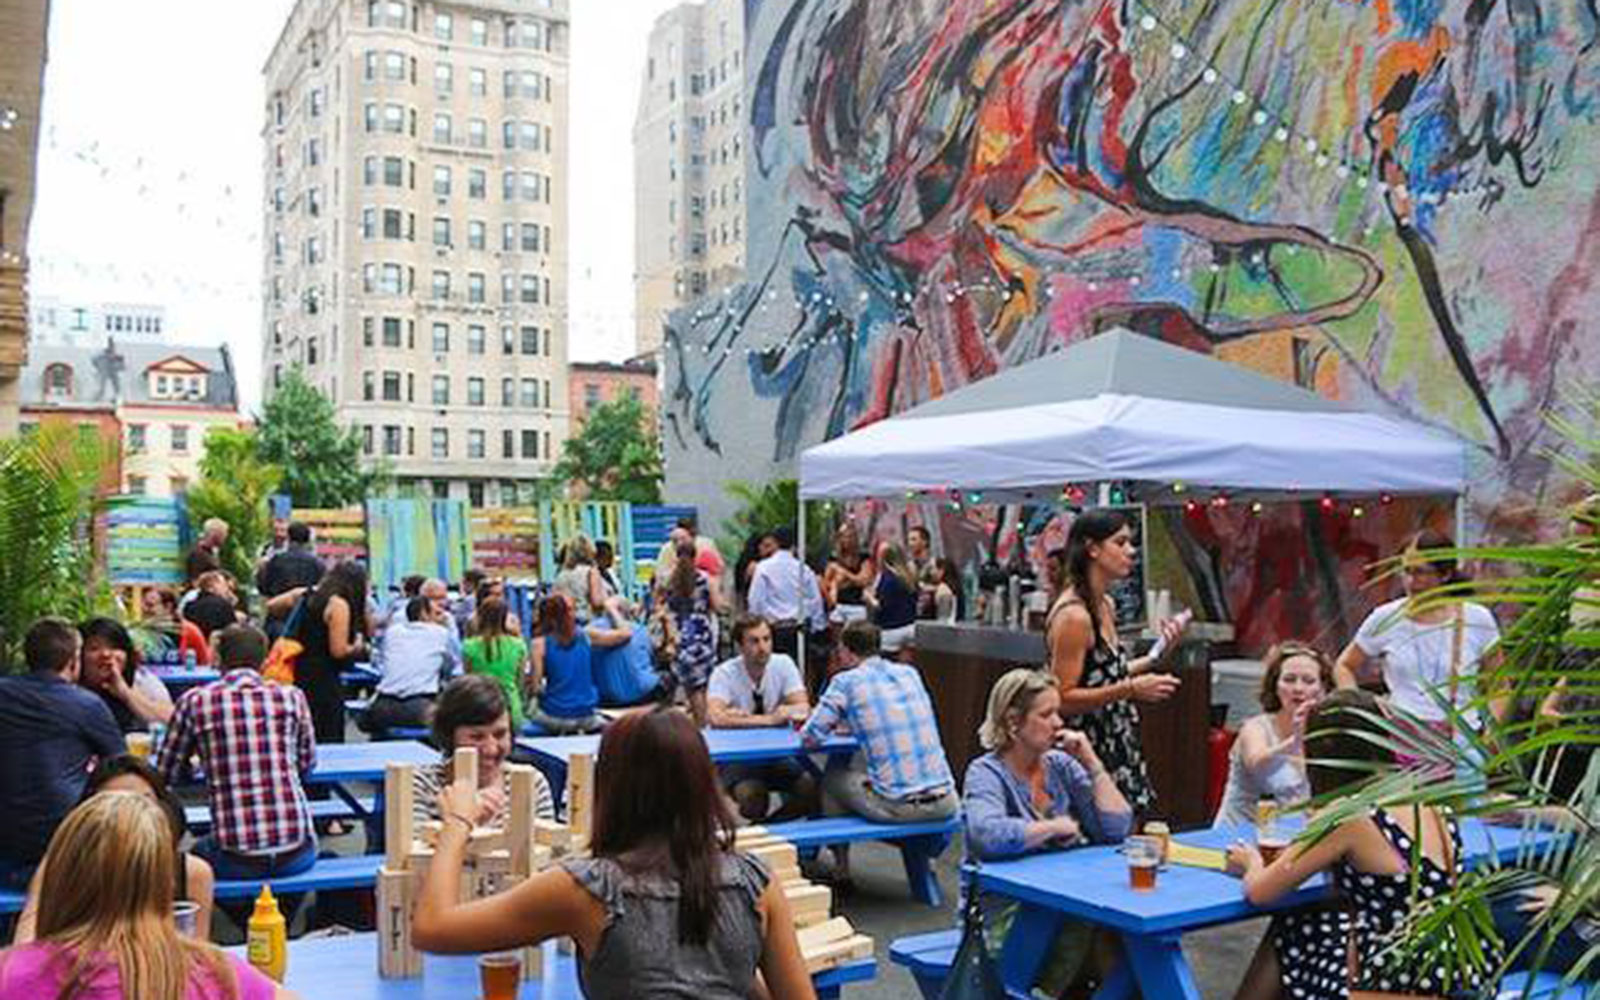 America's Best Cities for Festivals: Philadelphia